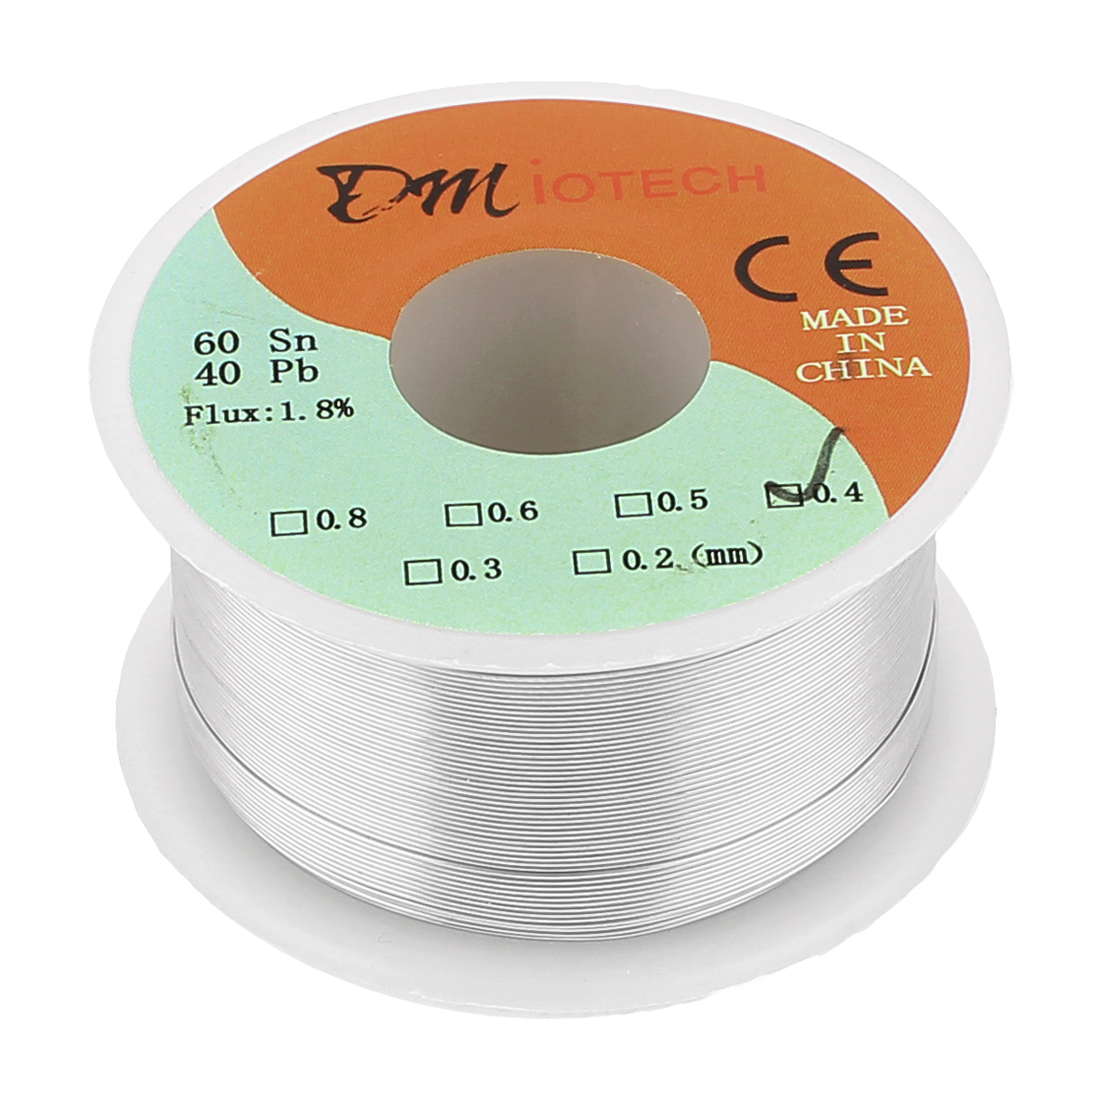 0.4mm Rosin Core Solder Tin Lead Solder Wire 60/40 for Electrical Soldering 100g